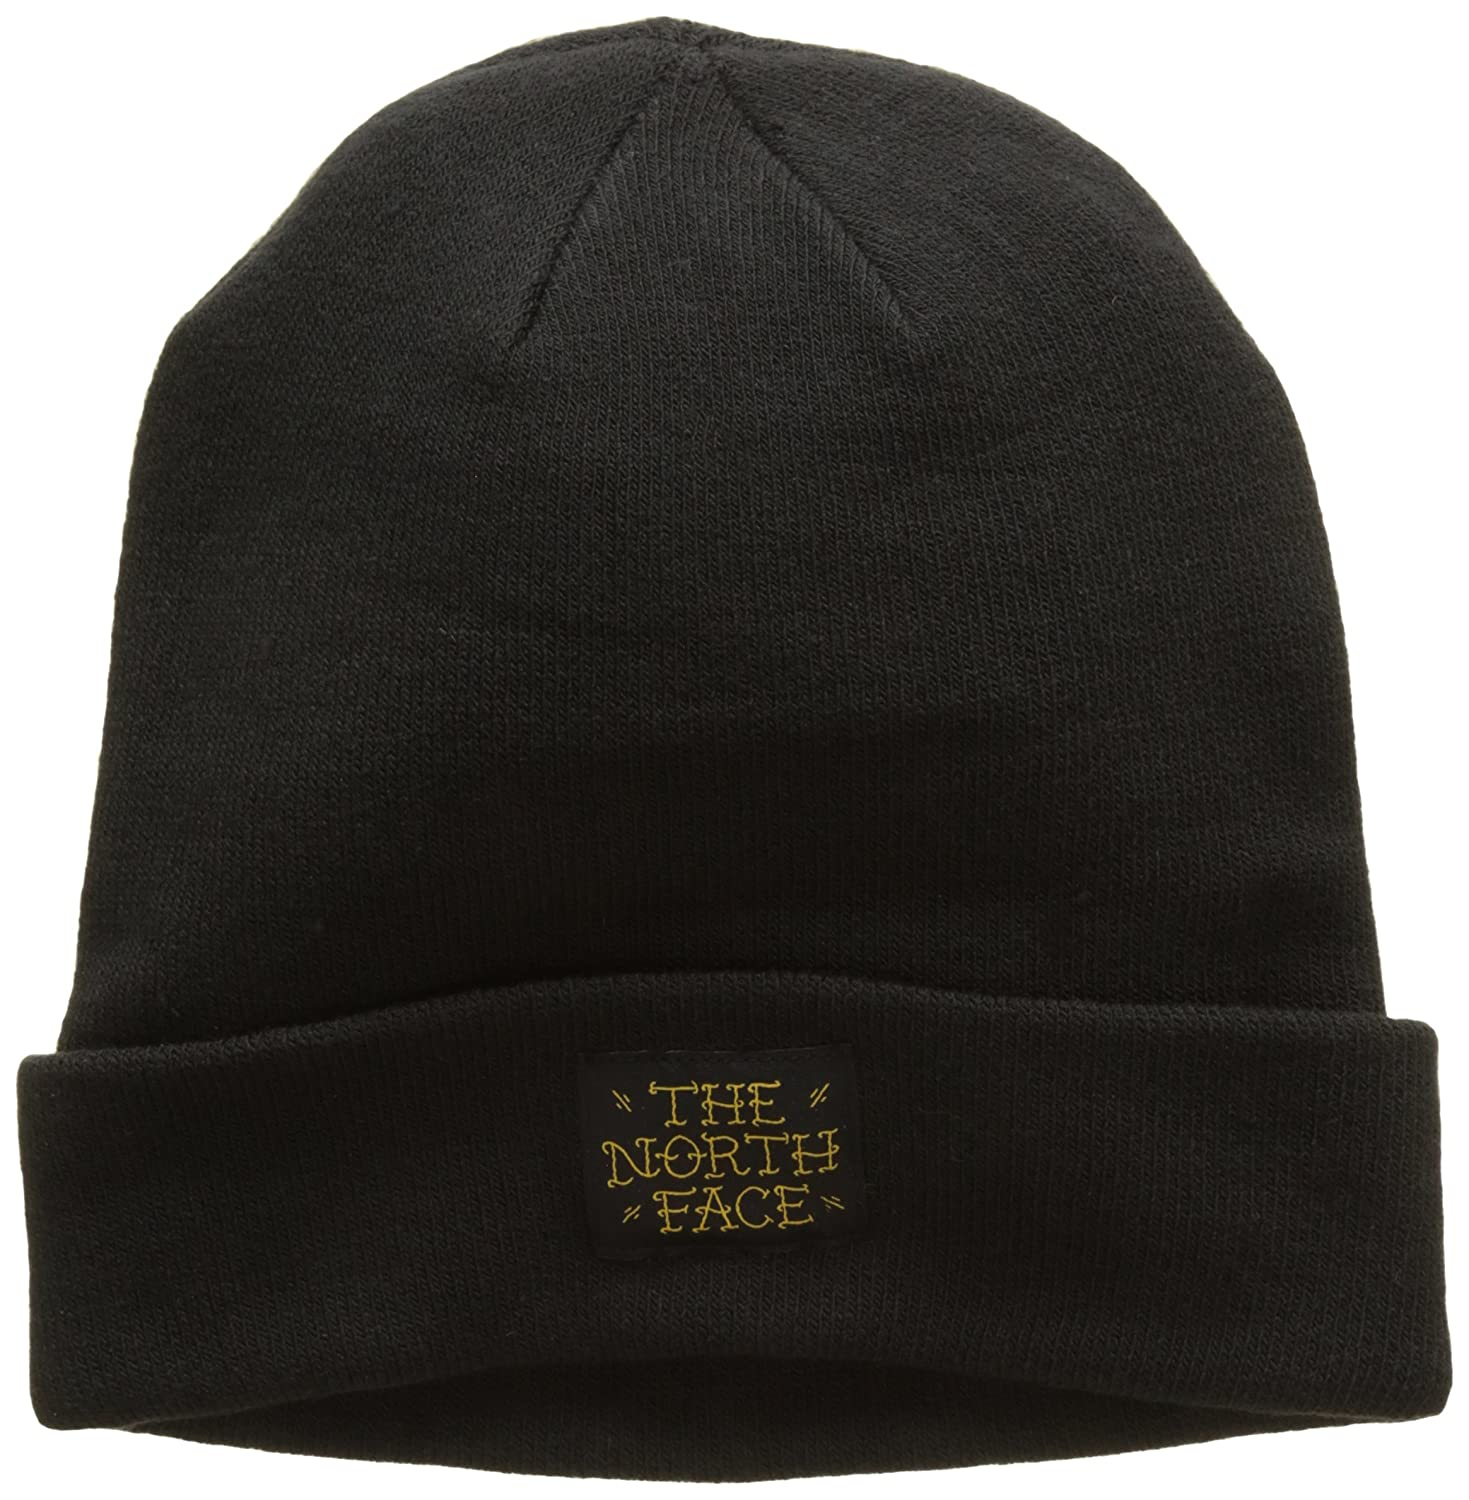 THE NORTH FACE Dock Worker - Bonnet - Mixte Tnf Black/Arrowwood Yellw NOS67 #The North Face T0CLN5UJF. OS